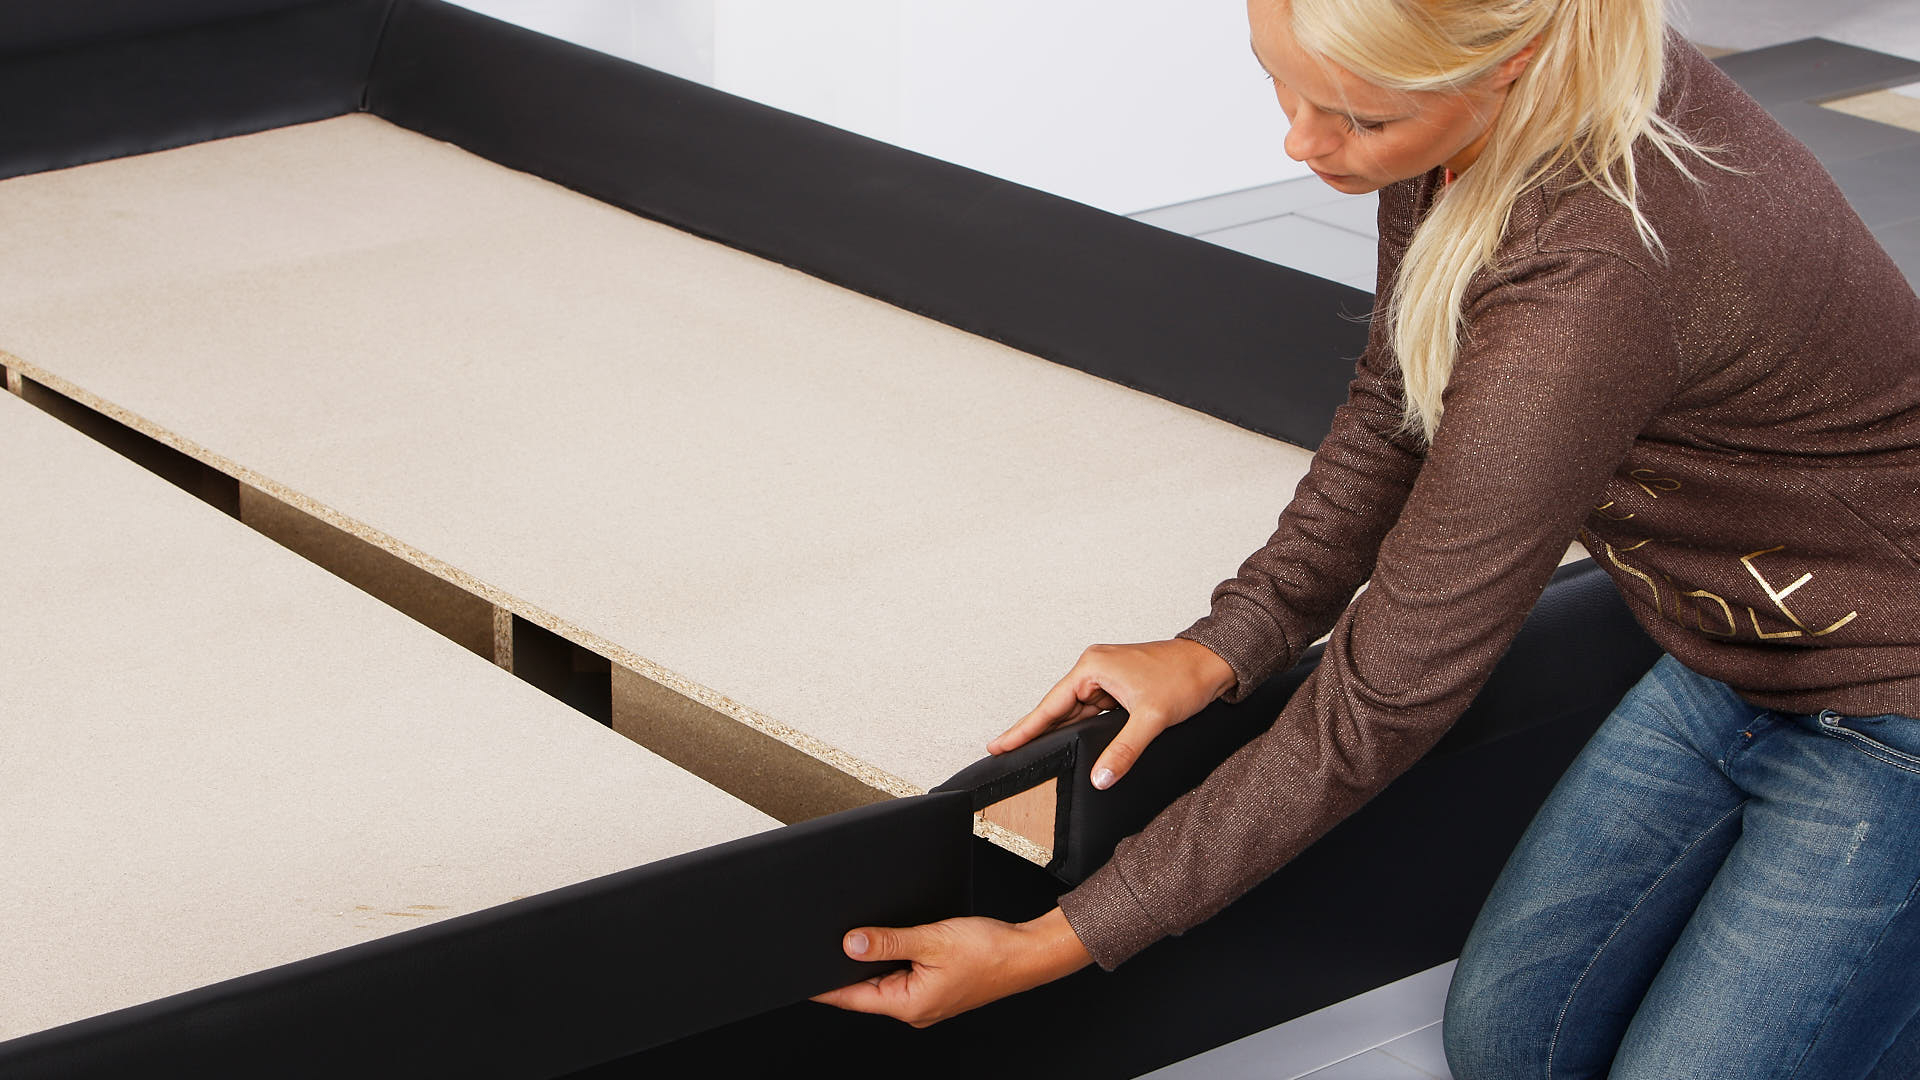 waterbed luxe bodemplaten vastmaken